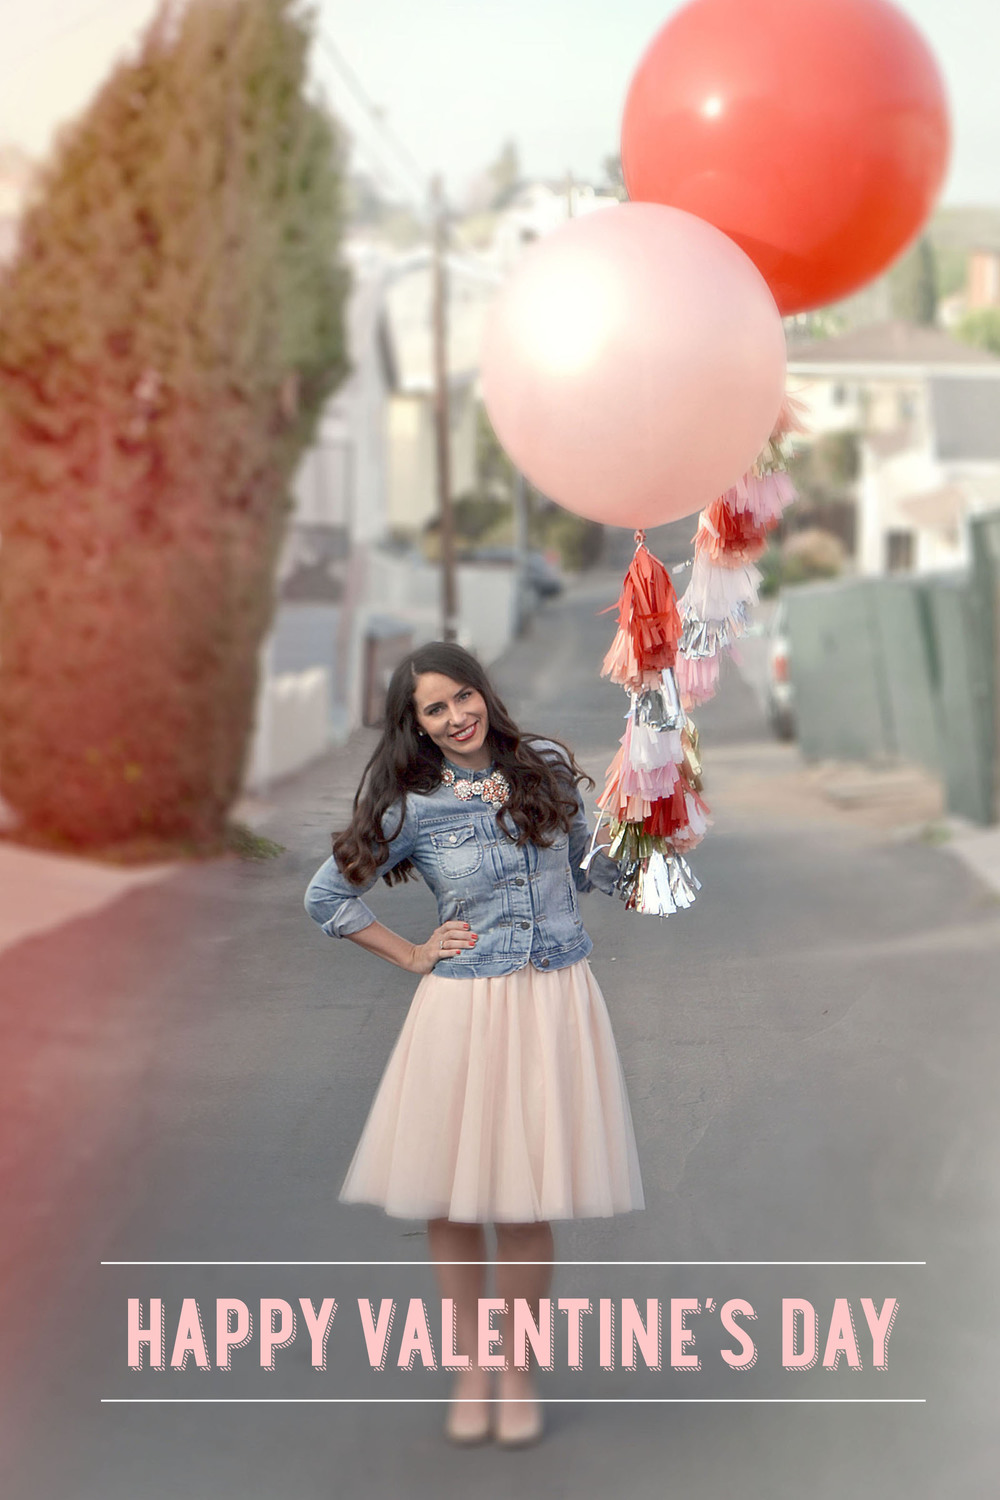 Giant Balloons with tassel garland